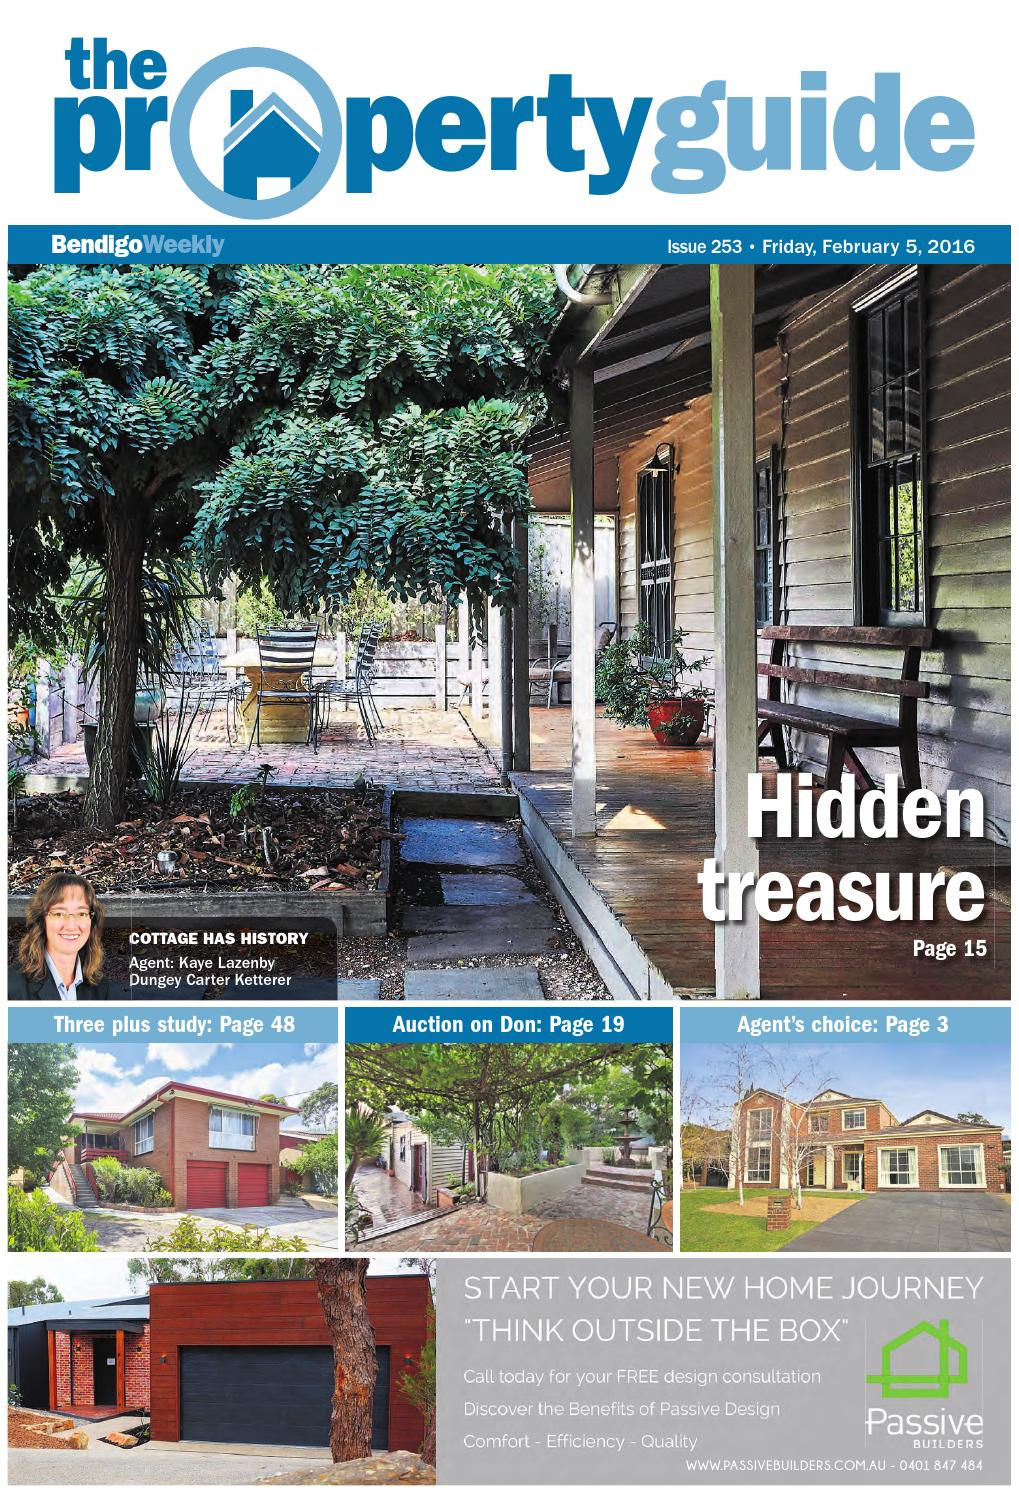 bendigo weekly property guide issue 253 fri feb 5 2016 by rh issuu com